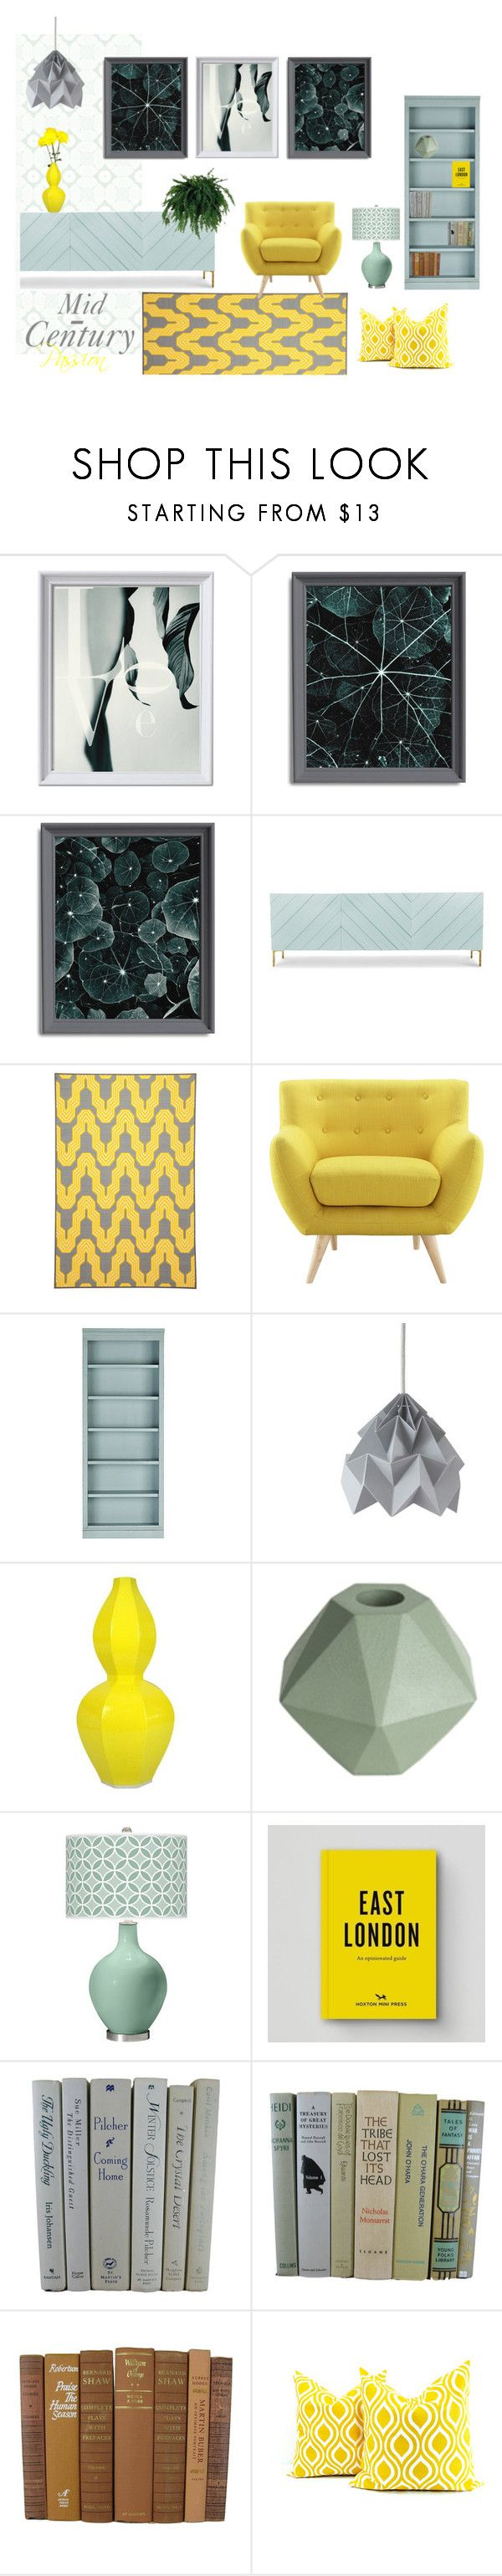 Interior set inspired by mid-century style. Variety of geometric patterns, touch of retro, nature patterns. Beautiful gallery wall inspired by organic geometry.  #gallerywall #wallart #midcentury #retro #livingroom #printable #printableart #walldecor #interiorpatterns #gallerywallideas #gallerywallart #gallerywalldecor